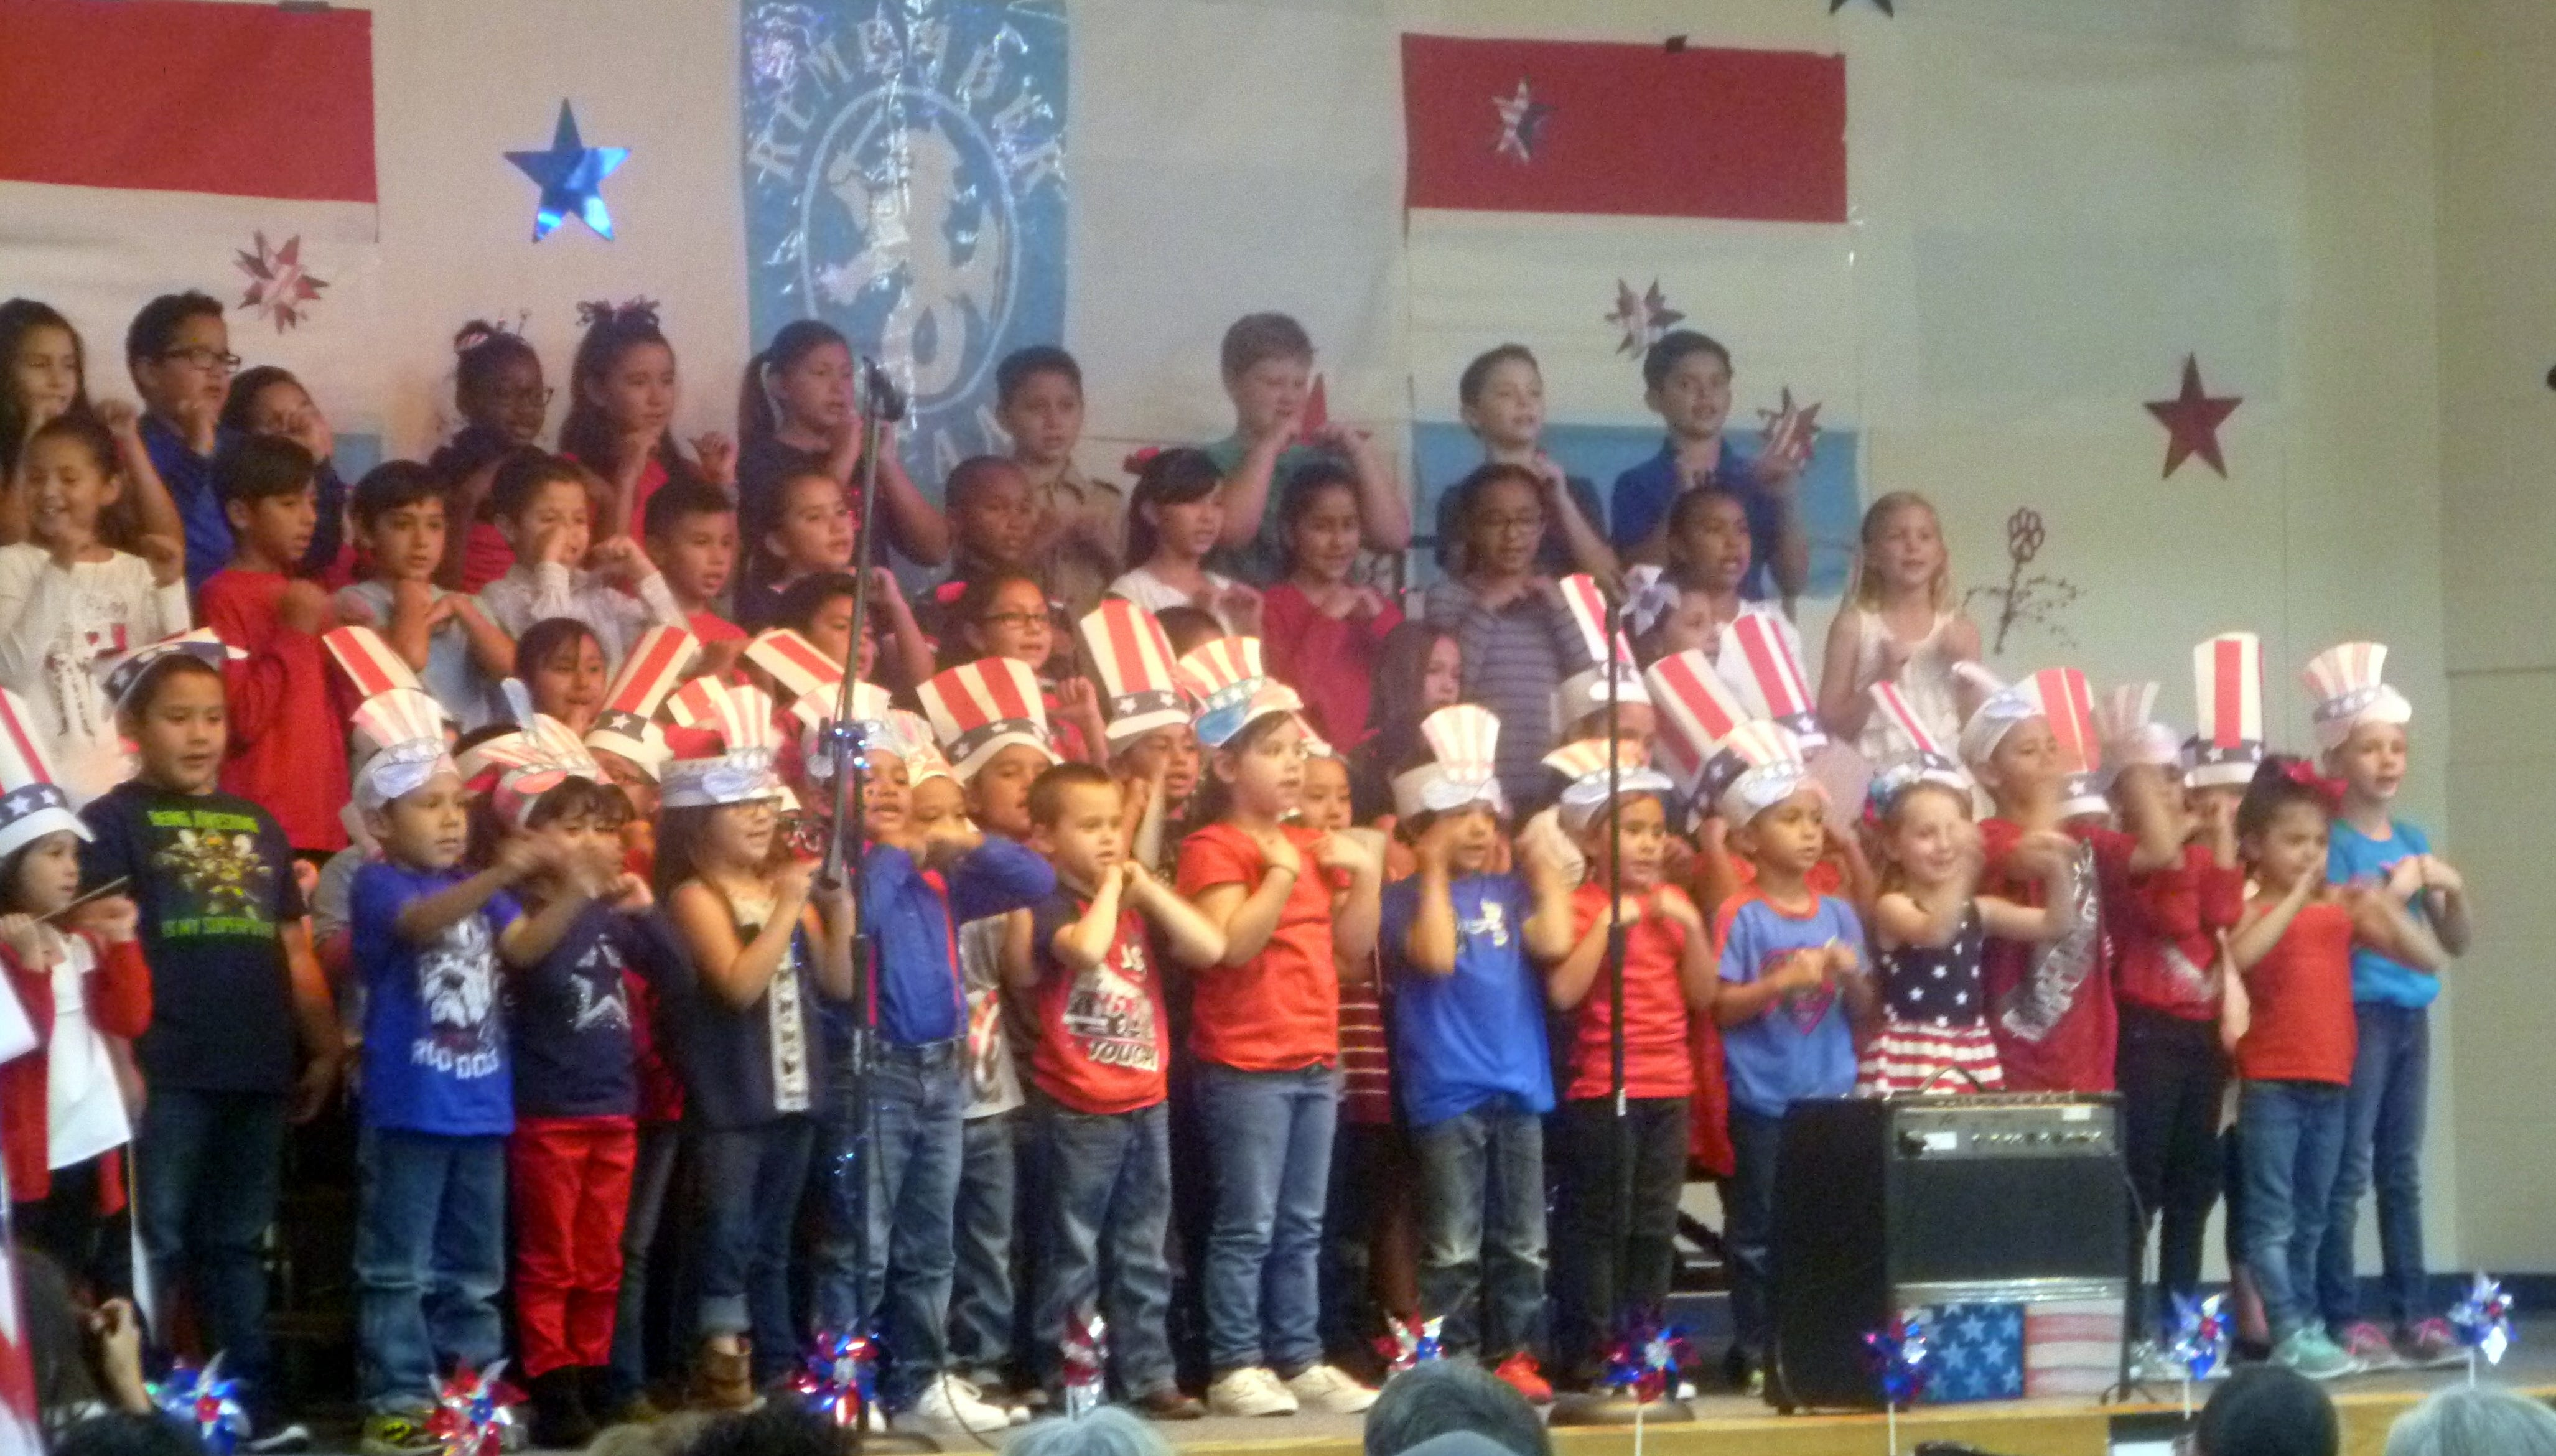 """Bataan Elementary School students will host its annual Veterans Day program at 10 a.m. on Friday, Nov.9in the gym. Veterans and community members are invited to the program.A PowerPoint presentation will be shown during the program. """"We would like to include pictures of veterans in our community on the PowerPoint,"""" said Kim Perea, one of the program's organizers. """"Anyone wishing to have their picture or loved one's picture included in the PowerPoint, may bring a picture by the school or email it to kim.perea@demingps.org. Please be sure to include the first and last name of the veteran.We need the pictures by Wednesday, October 24. Come join Bataan Elementary students as they pay tribute to our veterans."""""""